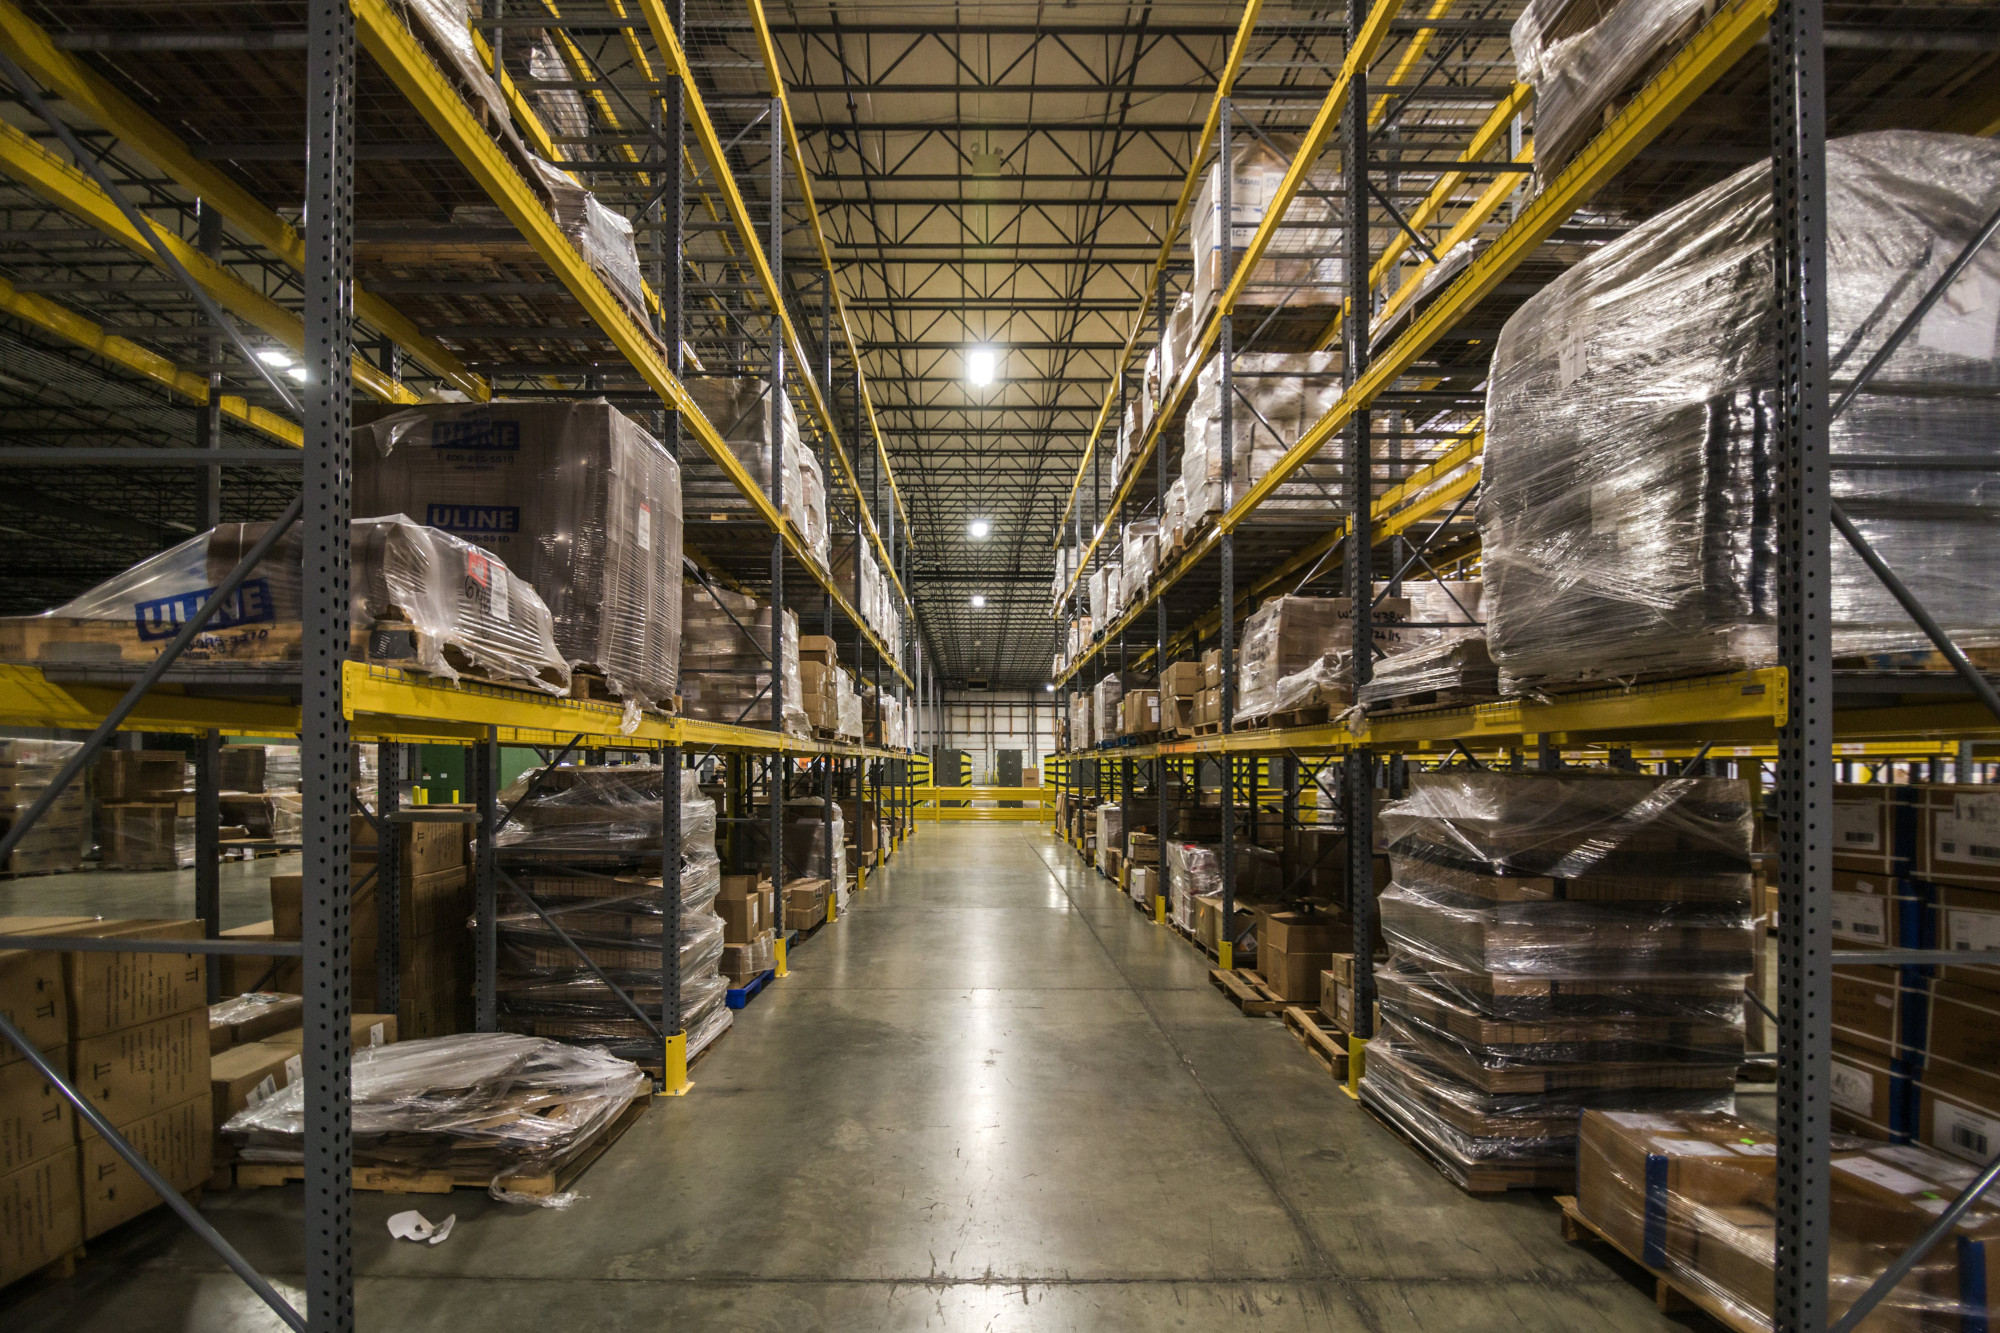 Geodis Knapp collaboration to automate fulfillment system